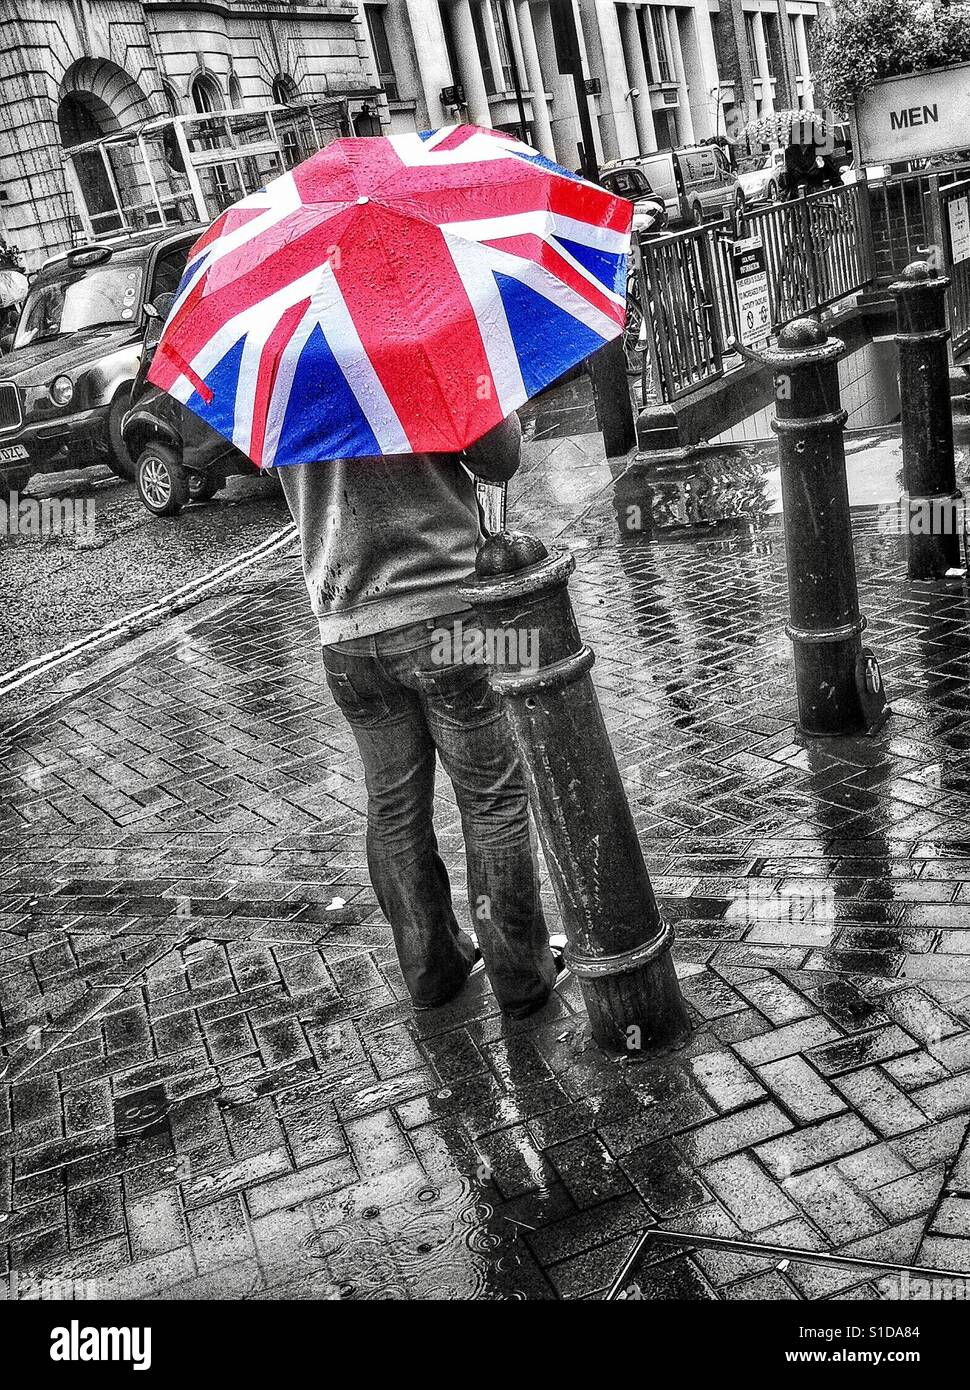 Black And White Selective Colour Photo Of A Man Standing In Rain Shower While Holding Colourful Union Flag Umbrella Near Carnaby Street London